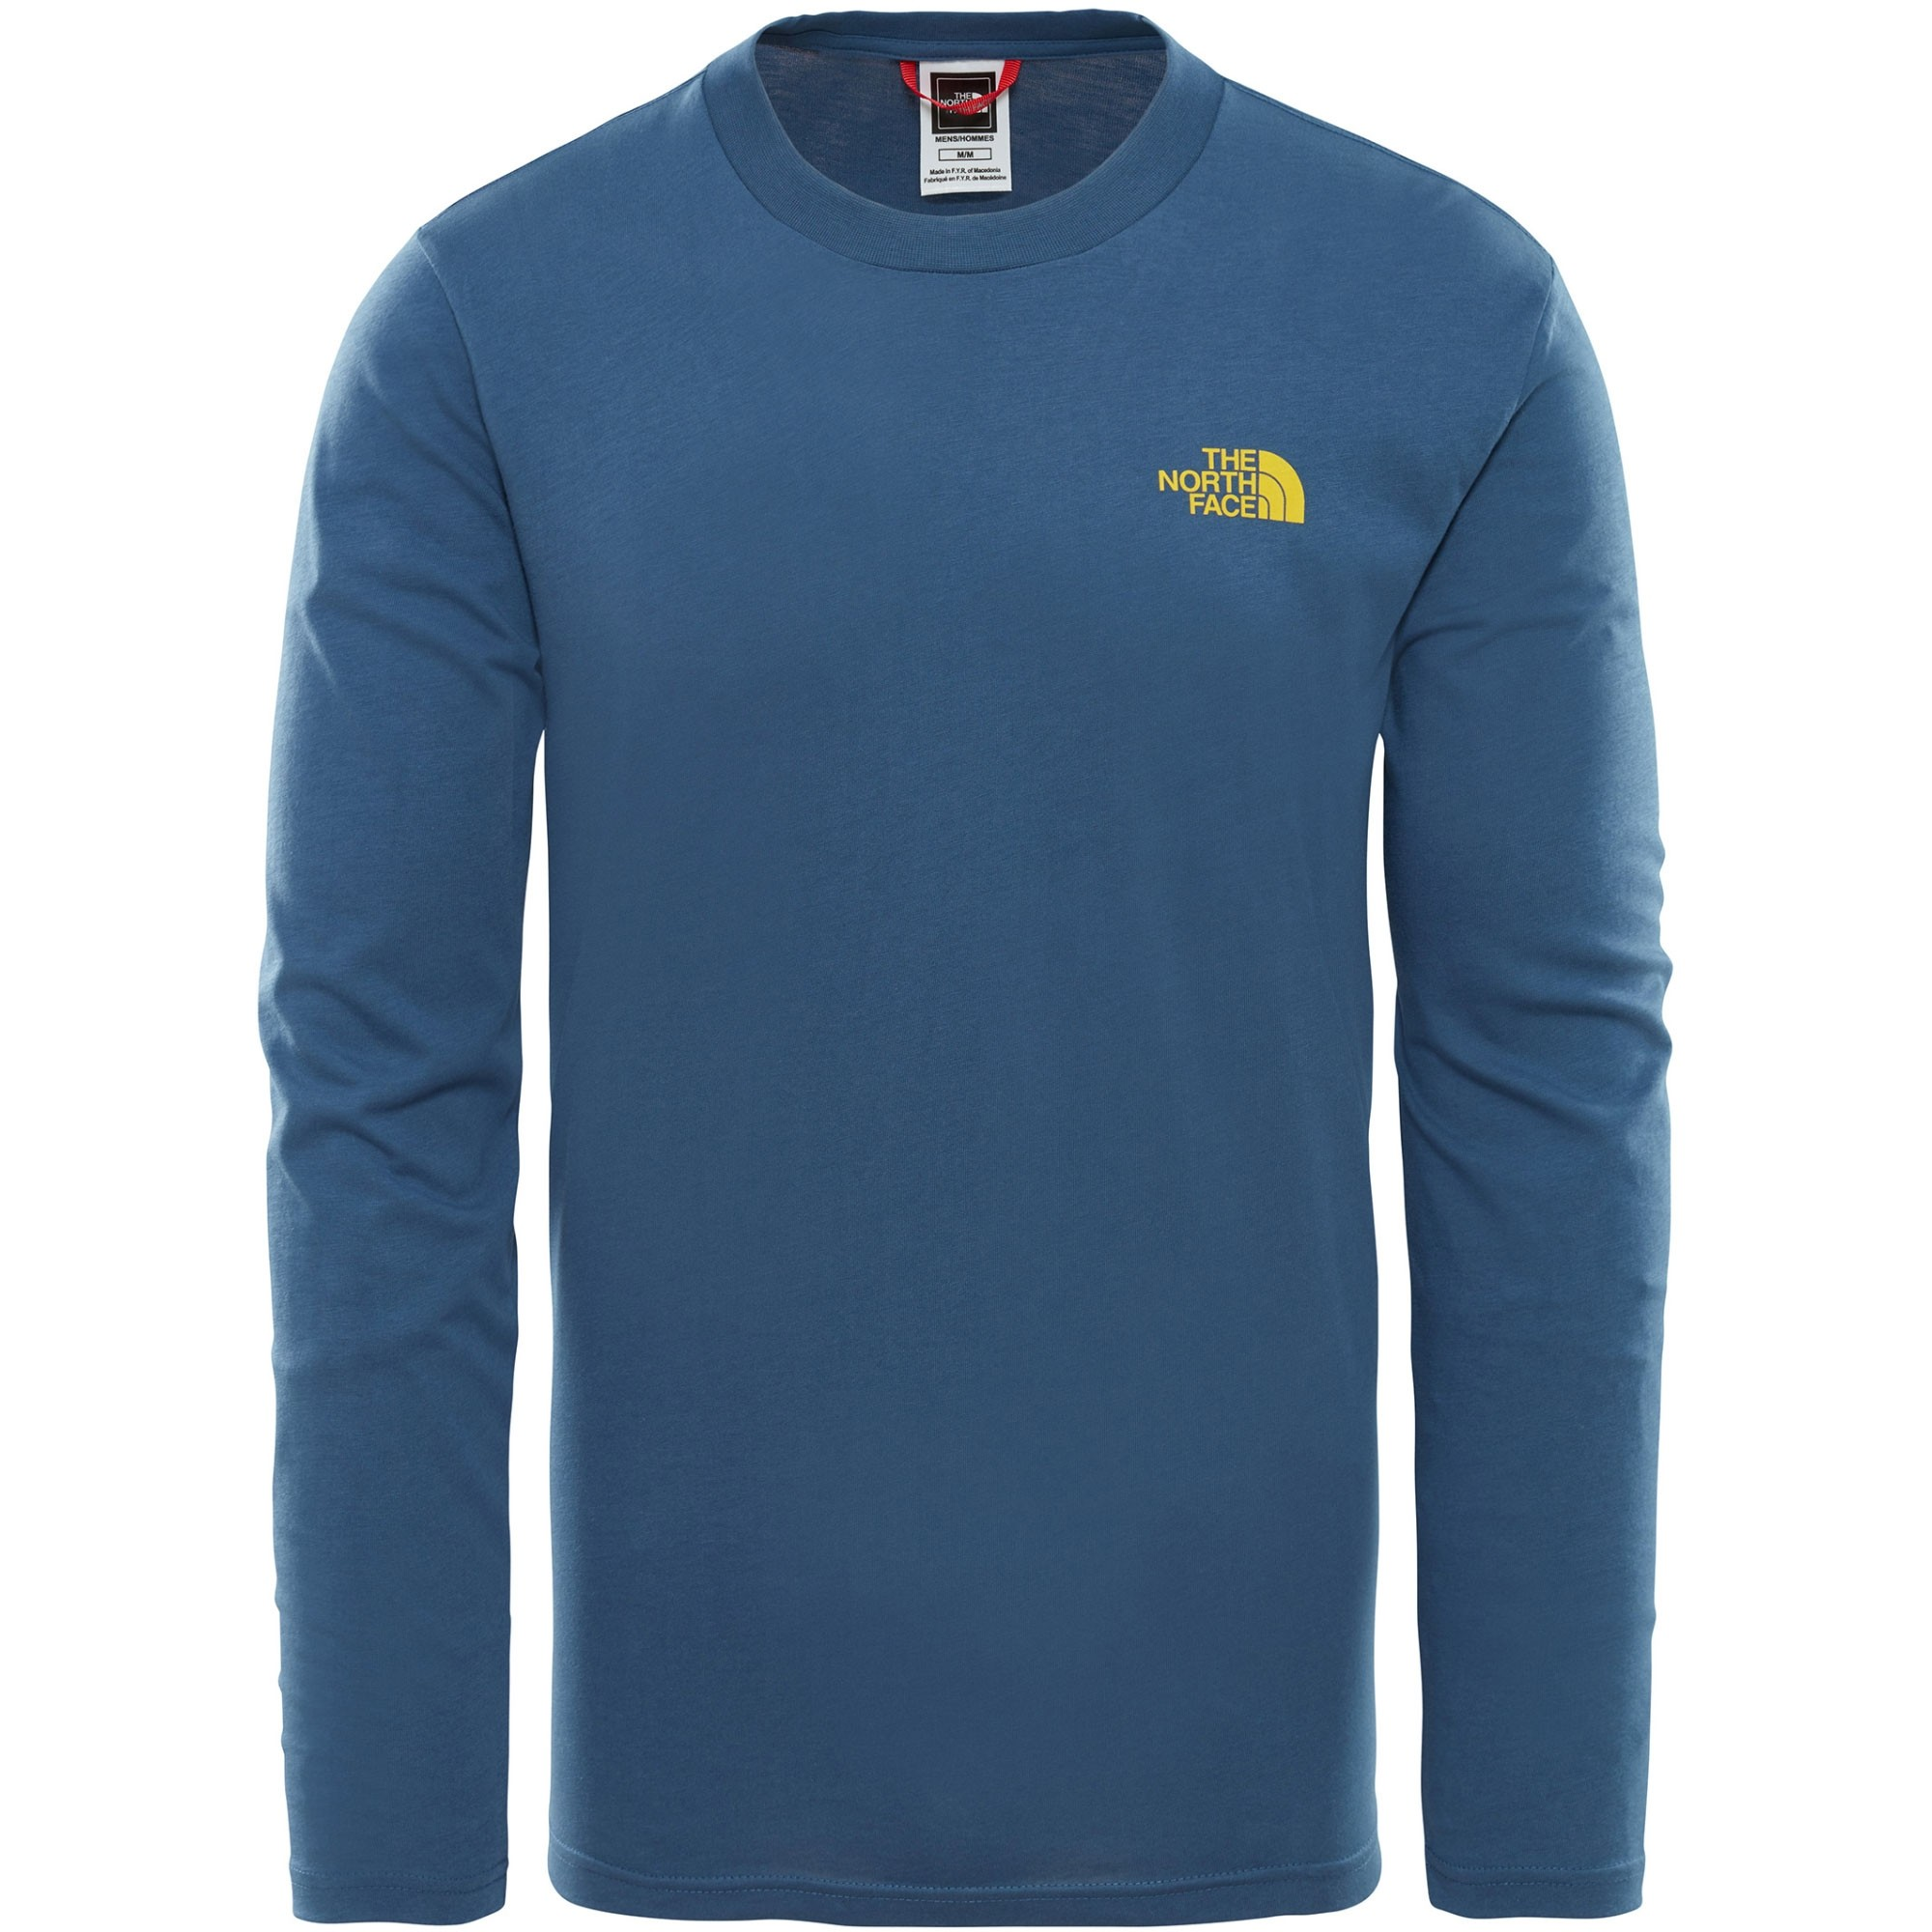 e36889a6710c The North Face Long Sleeve Easy Tee - Shady Blue/Leopard Yellow ...